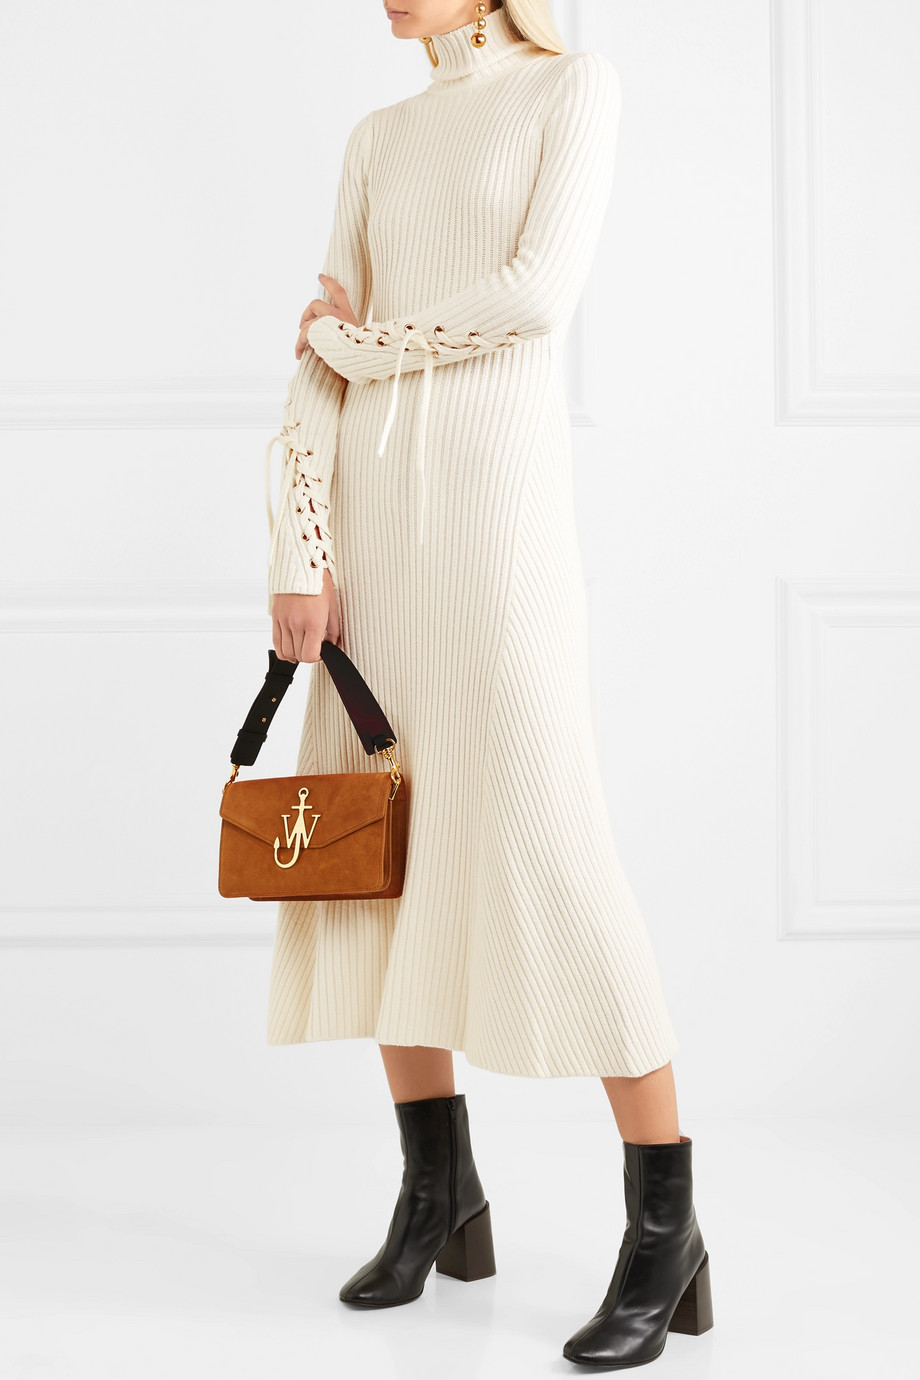 Maje midi dress / knitwear